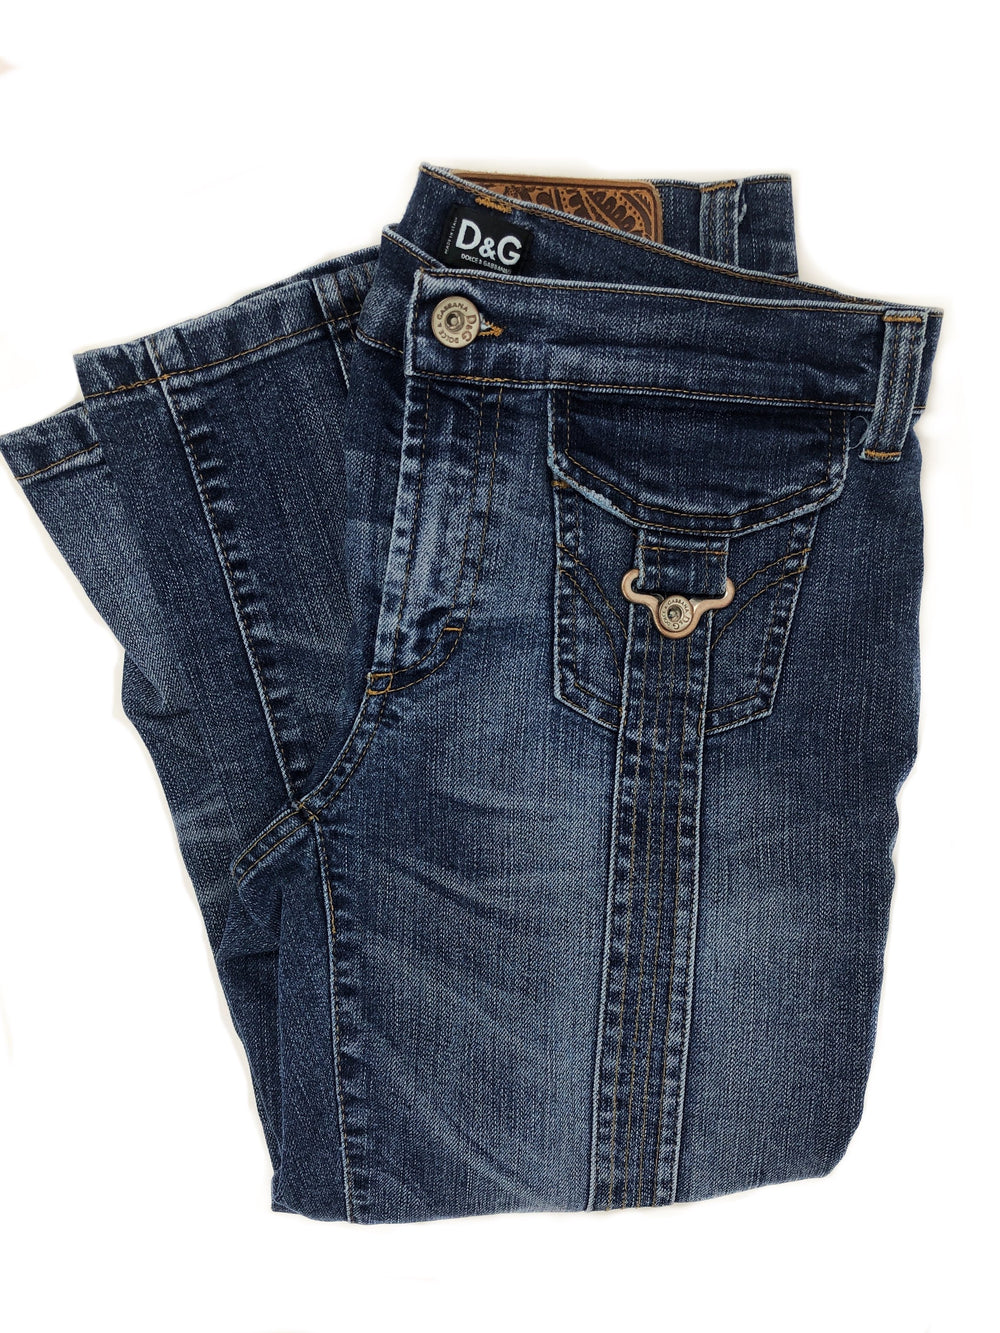 Y2K D&G Suspender Pocket Capri Jeans Like New - ReLuxe.